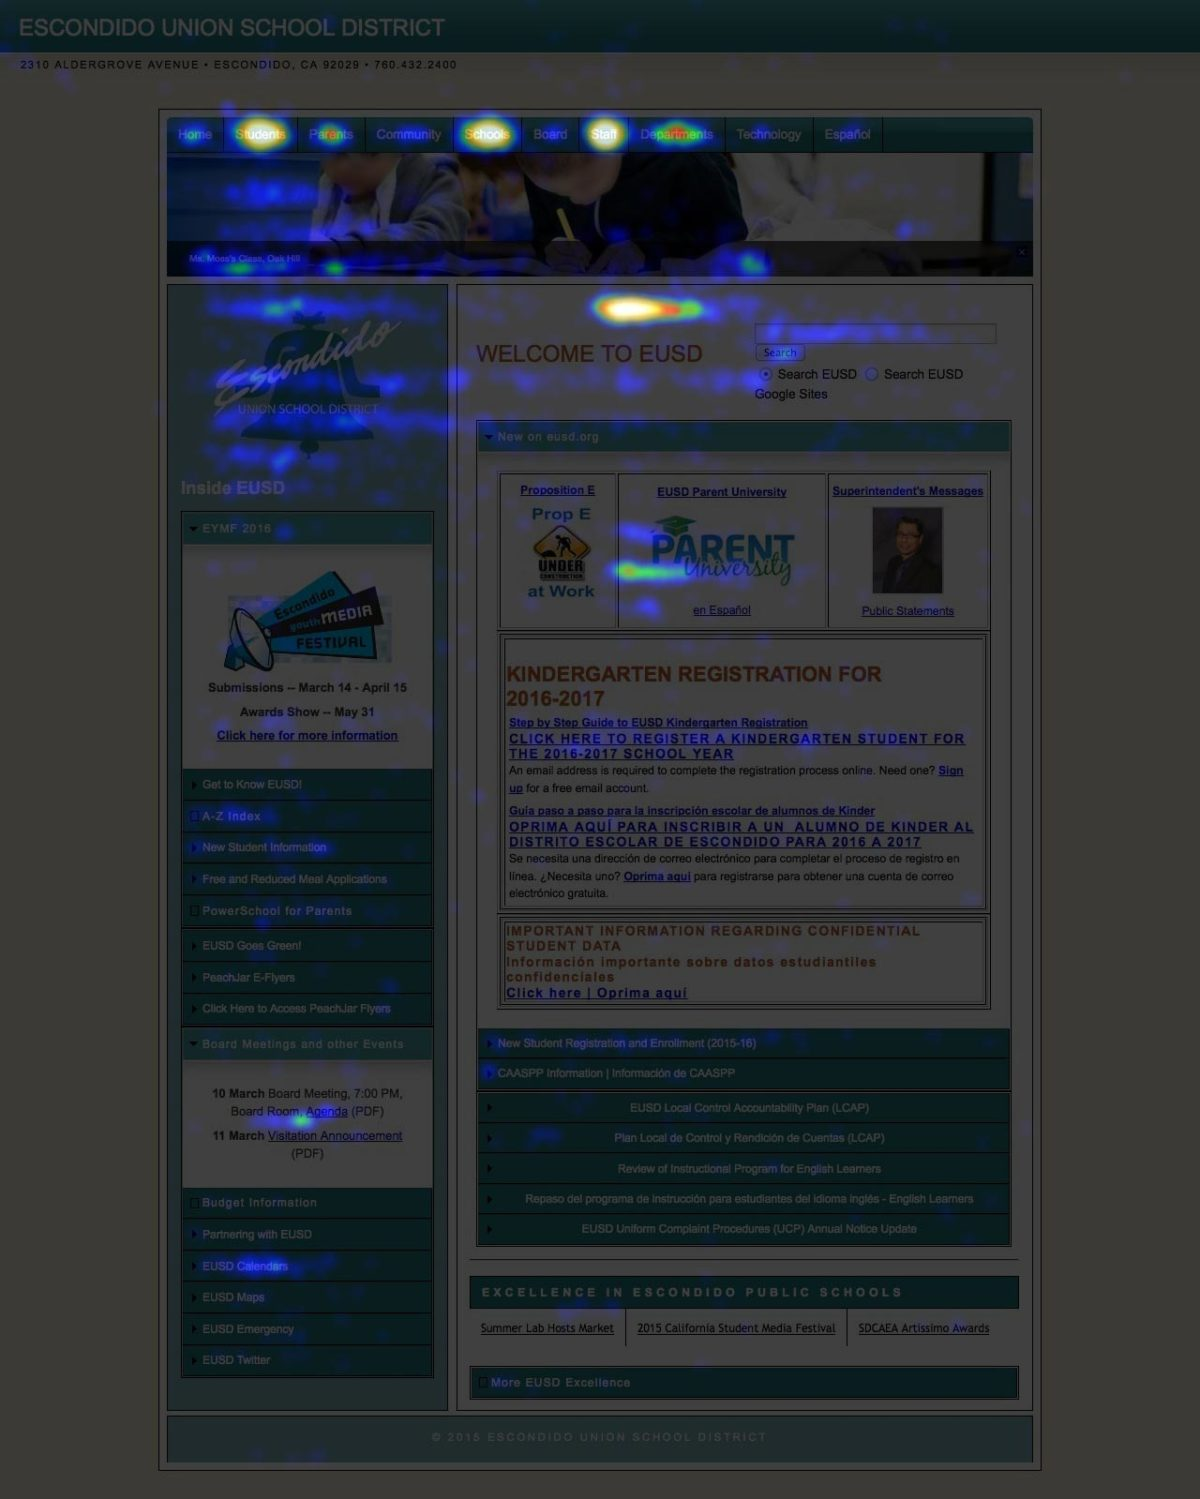 A heat map of the old home page with very few hot spots indicating that people weren't clicking most of its links.